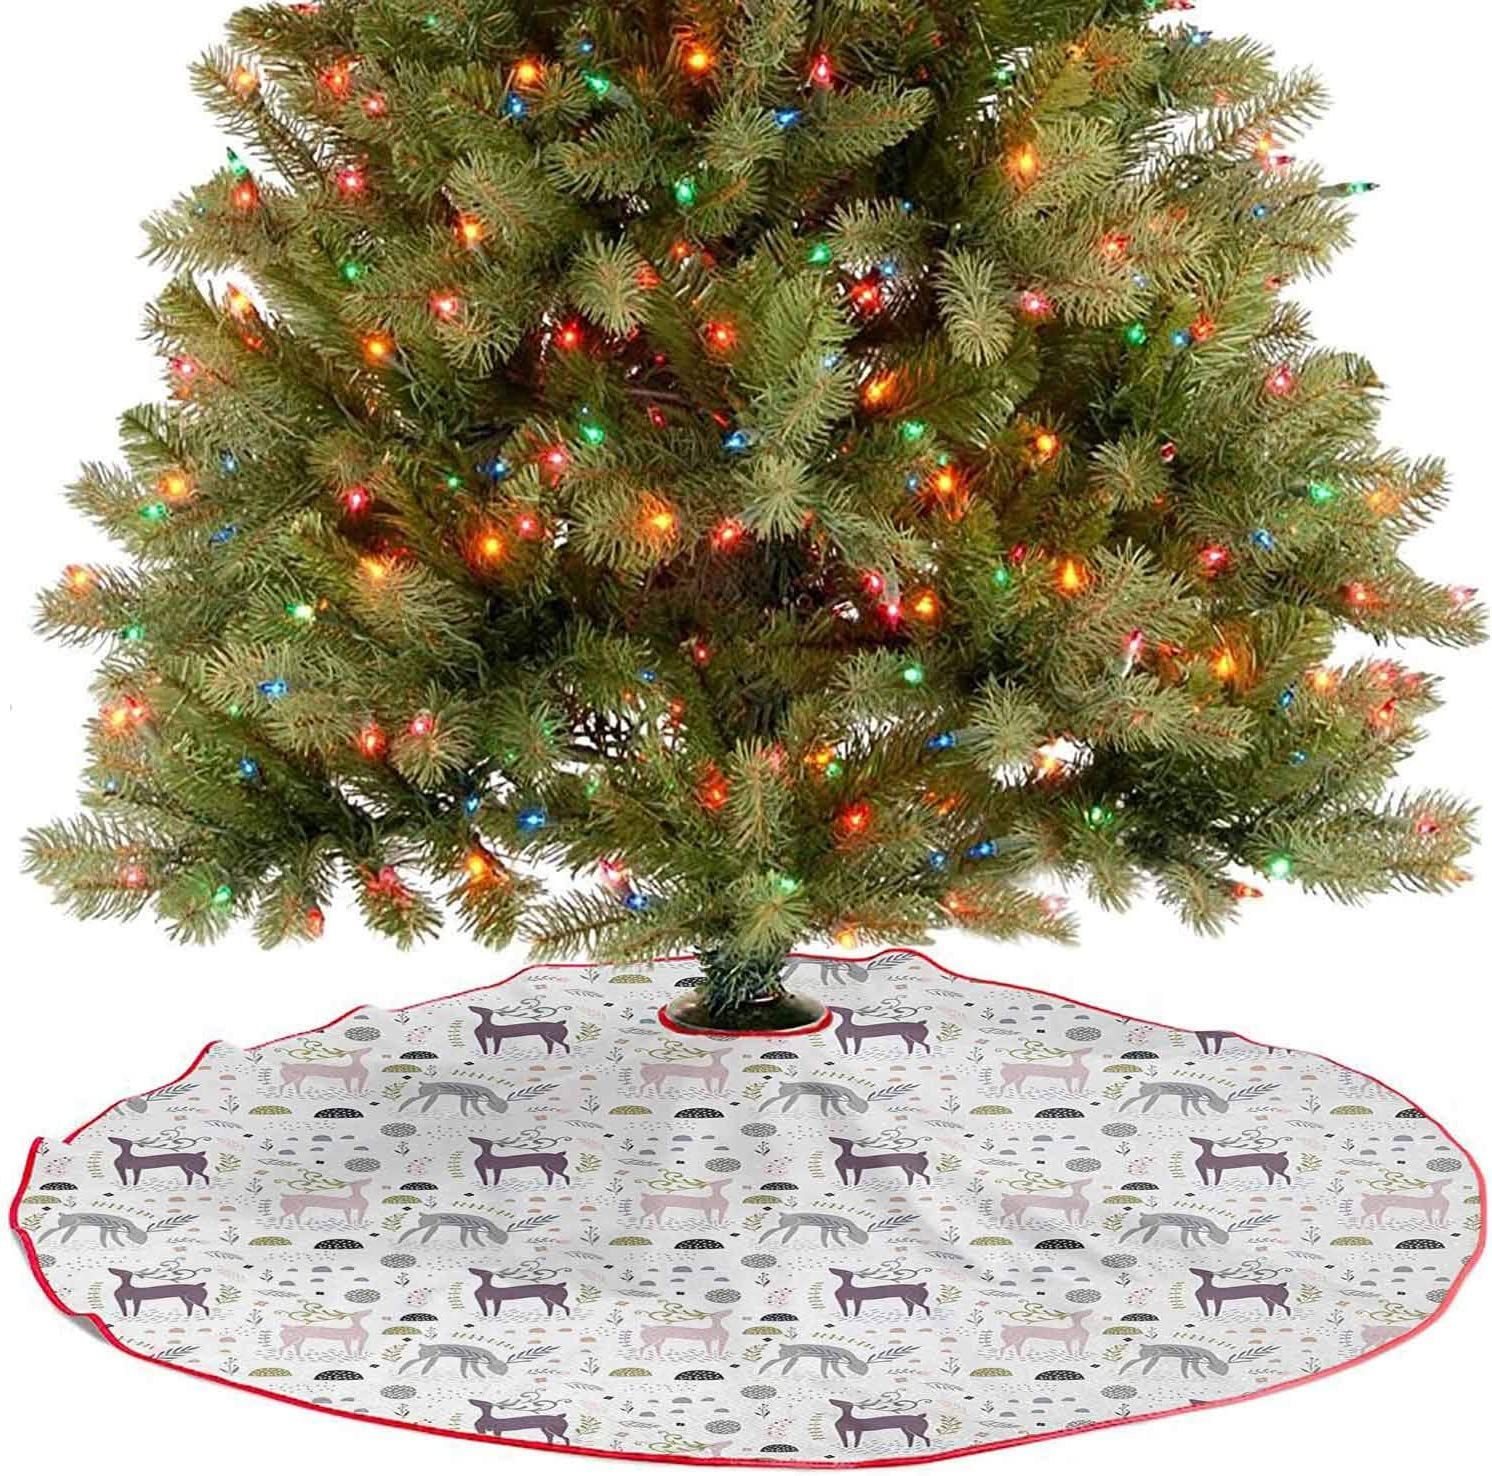 Christmas Tree Skirt 36 Inch Forest Holiday Party Tree Skirt Enchanted Woodland Creatures Deer with Curved Antlers Foliage Dotted Rocks Pattern Christmas Tree Holiday Decor Multicolor